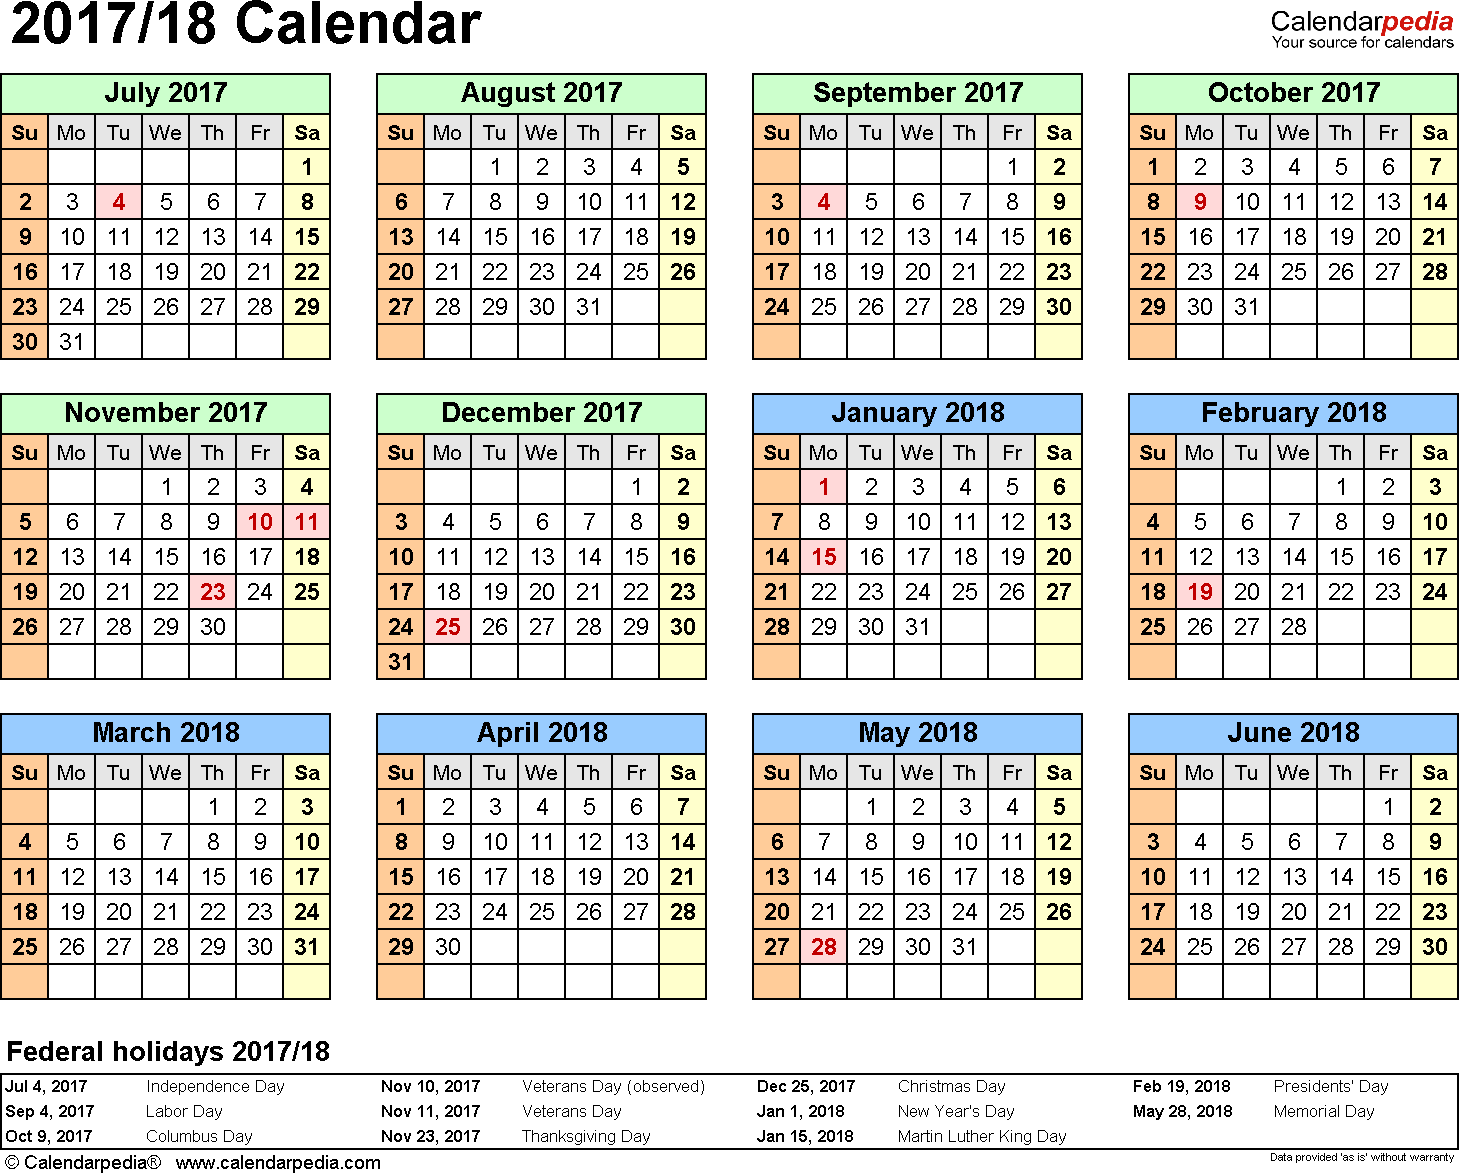 Template 3: 2017/2018 split year/half year calendar, for PDF, landscape orientation, year at a glance, 1 page